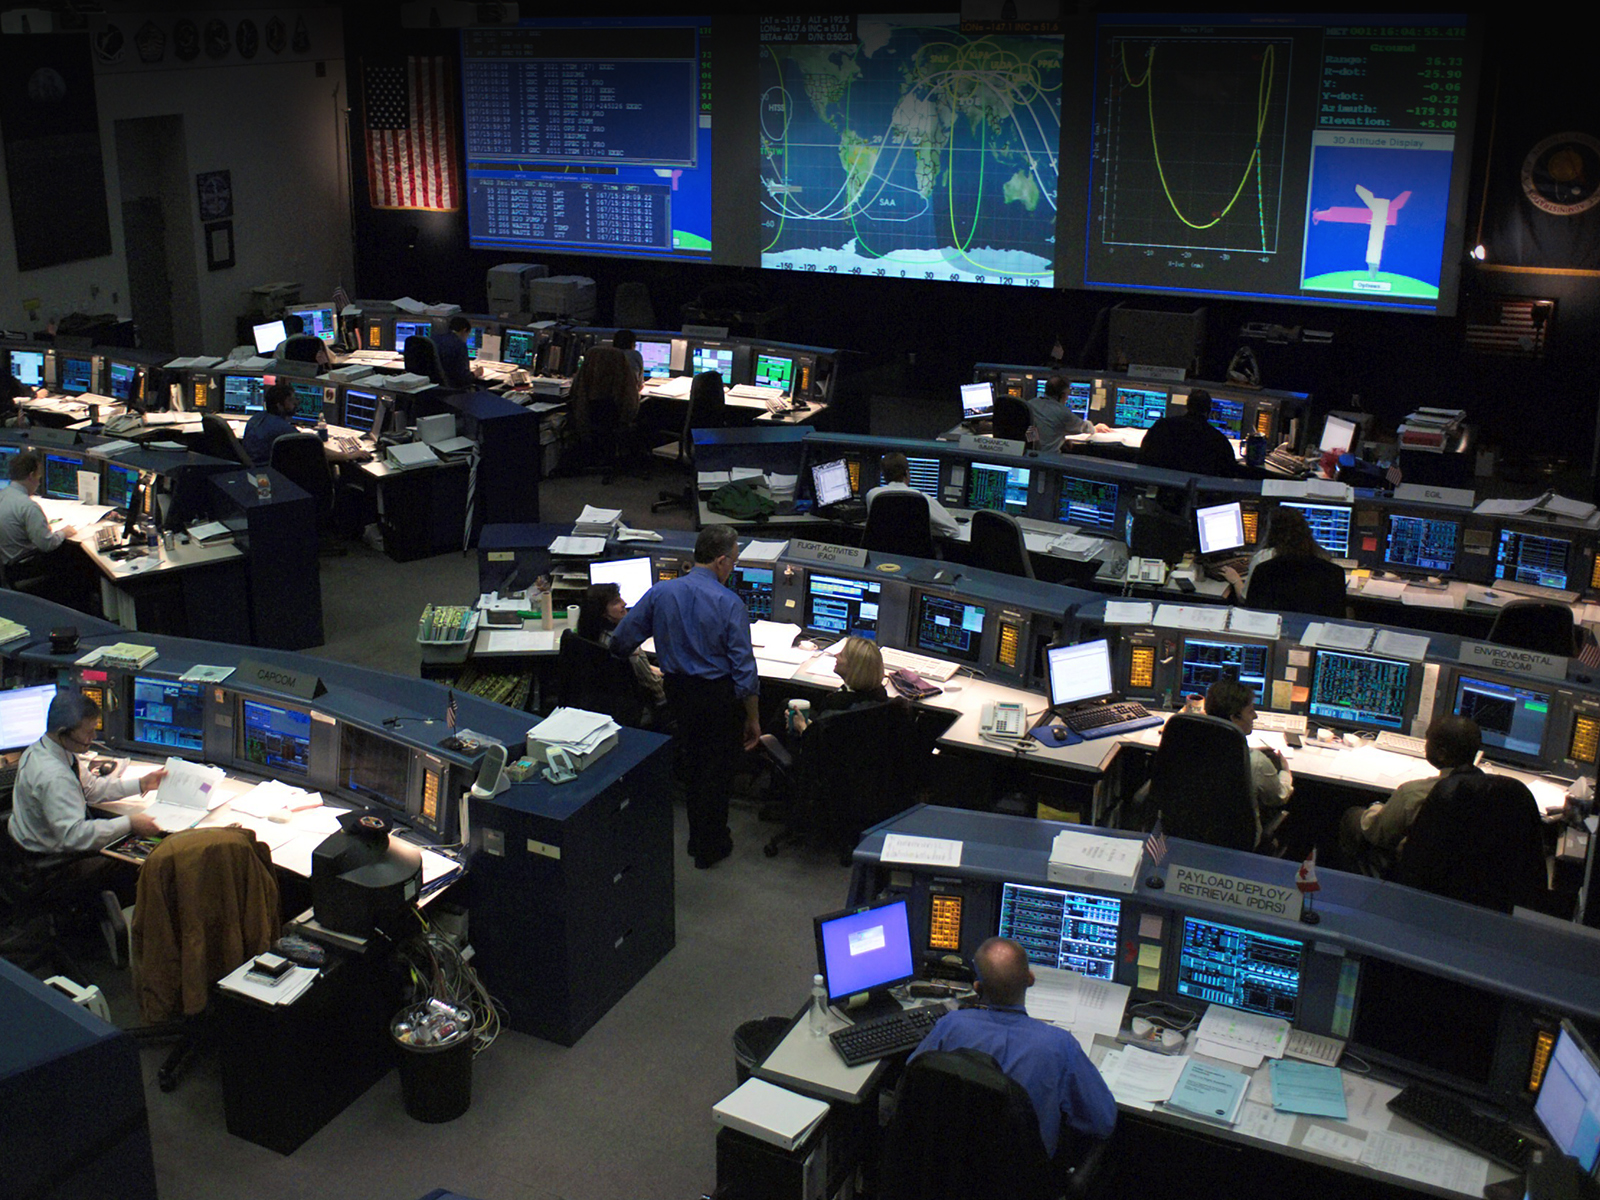 Space Center Houston | New Mission Control